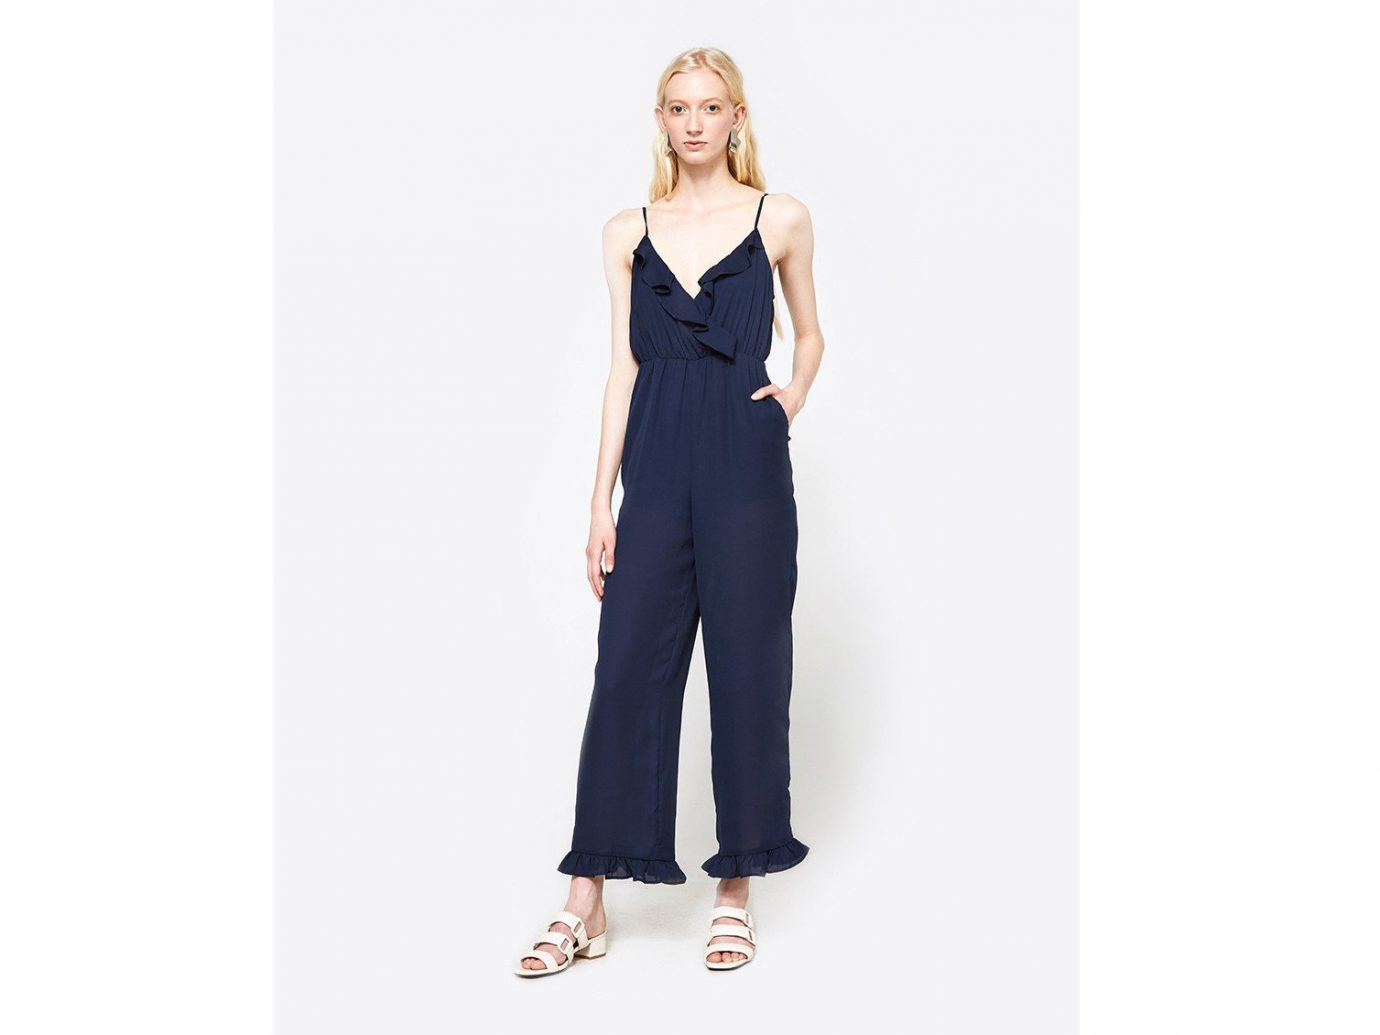 City Palm Springs Style + Design Travel Shop clothing shoulder standing dress fashion model neck posing electric blue formal wear overall joint one piece garment waist trouser suit work-clothing